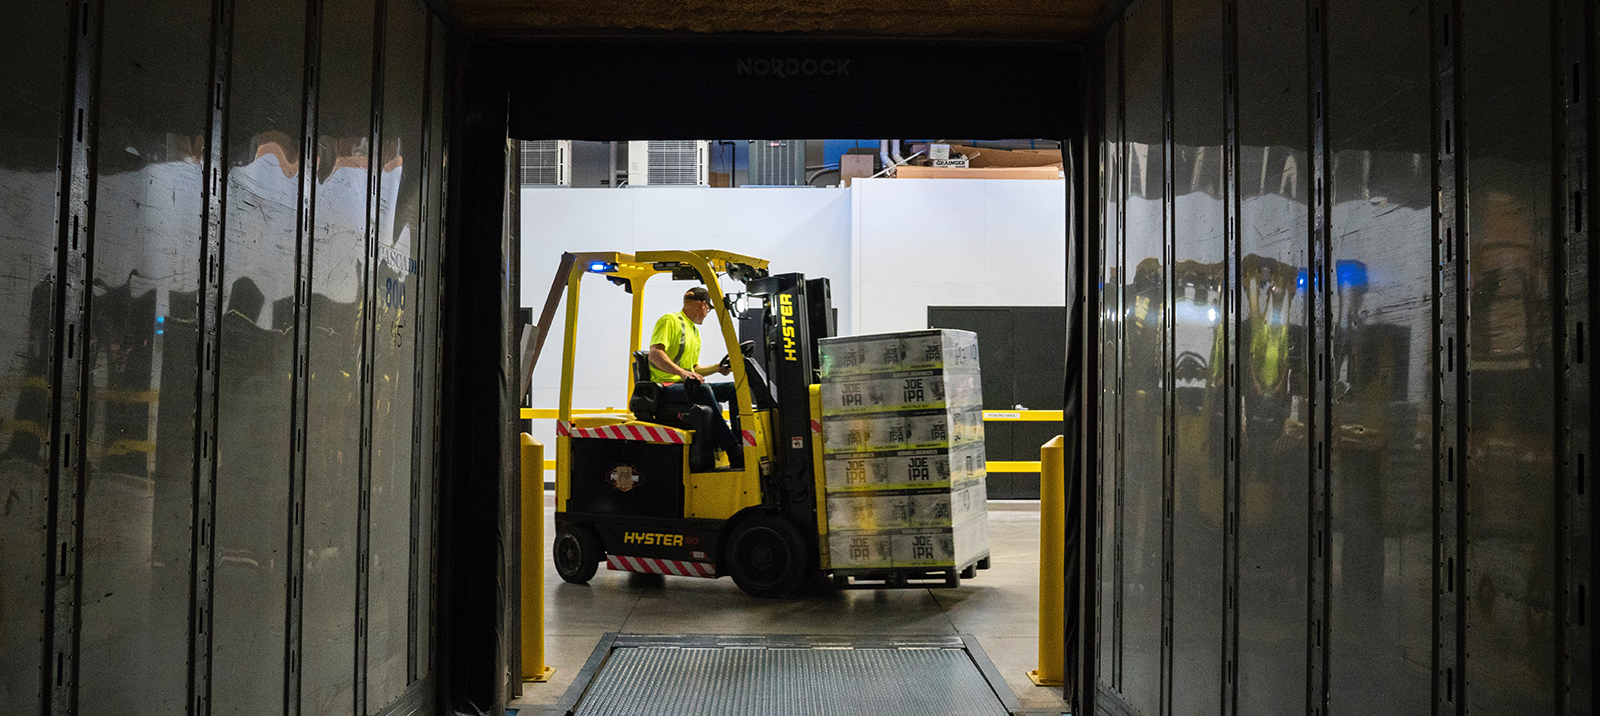 Your Forklift Buying Guide: Top Considerations to Make